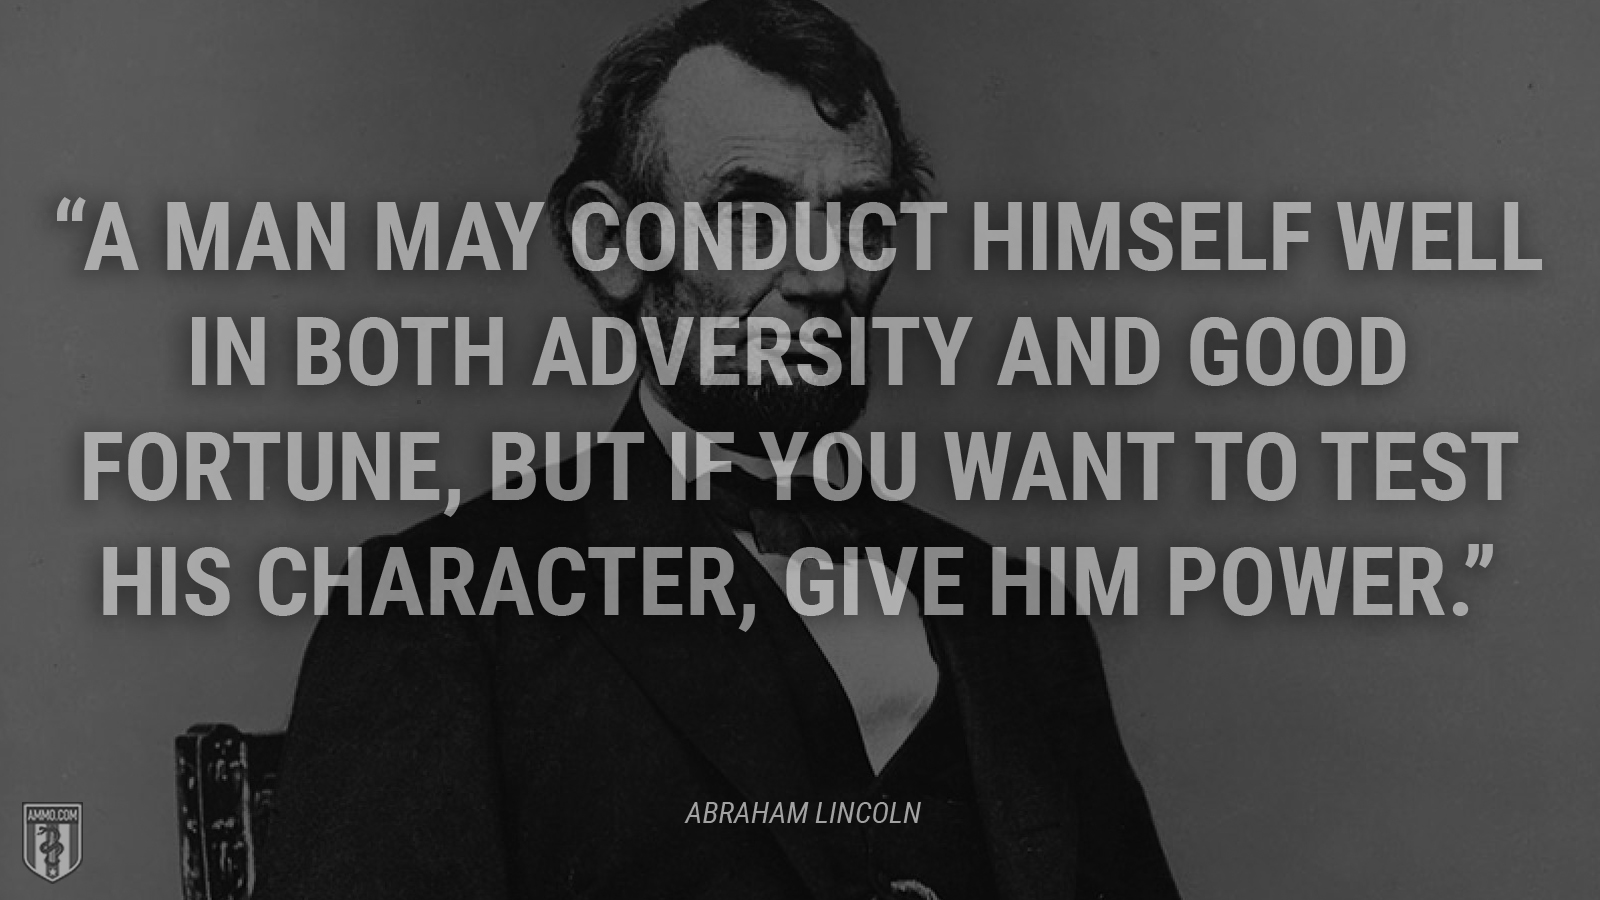 """A man may conduct himself well in both adversity and good fortune, but if you want to test his character, give him power."" - Abraham Lincoln"